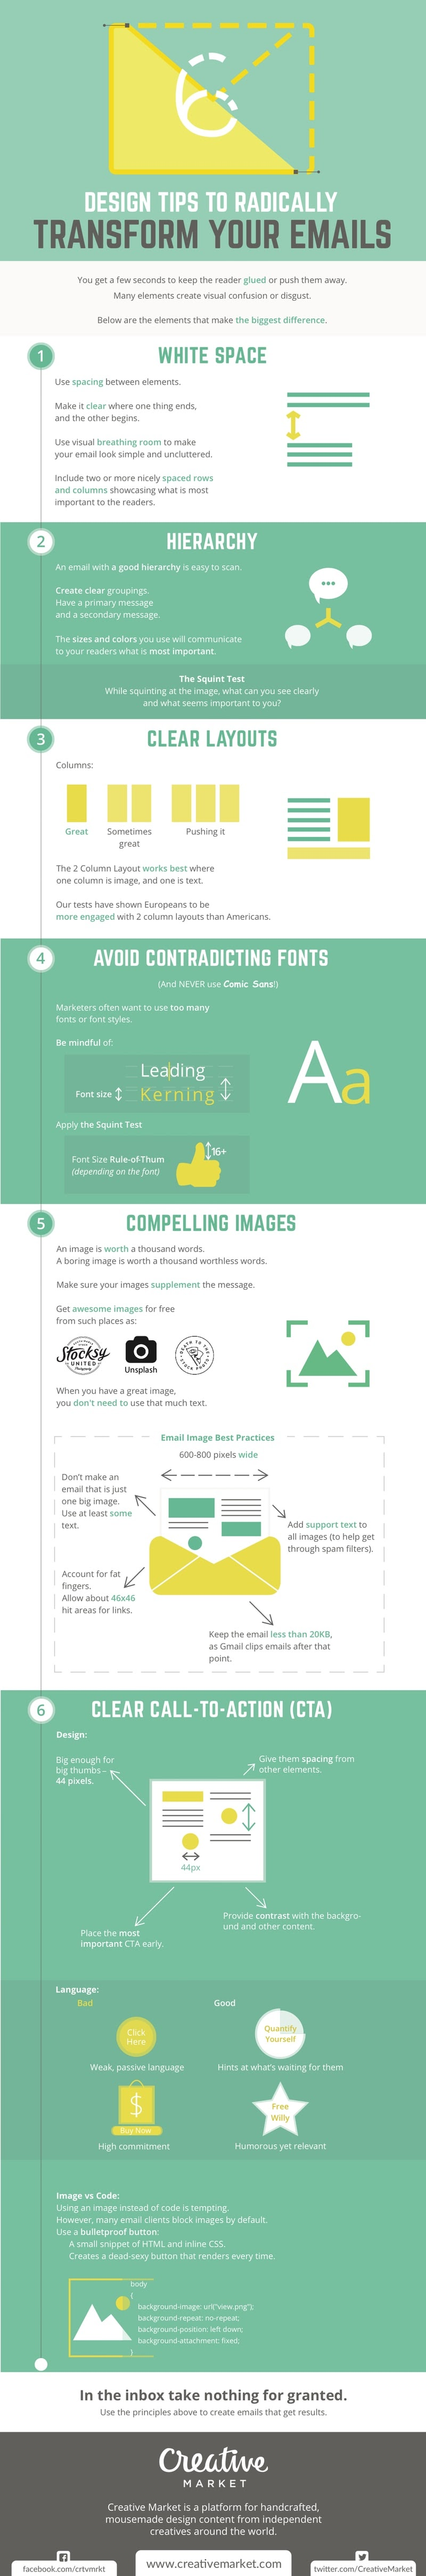 6 Design Tips to Radically Transform Your Emails - #infographic